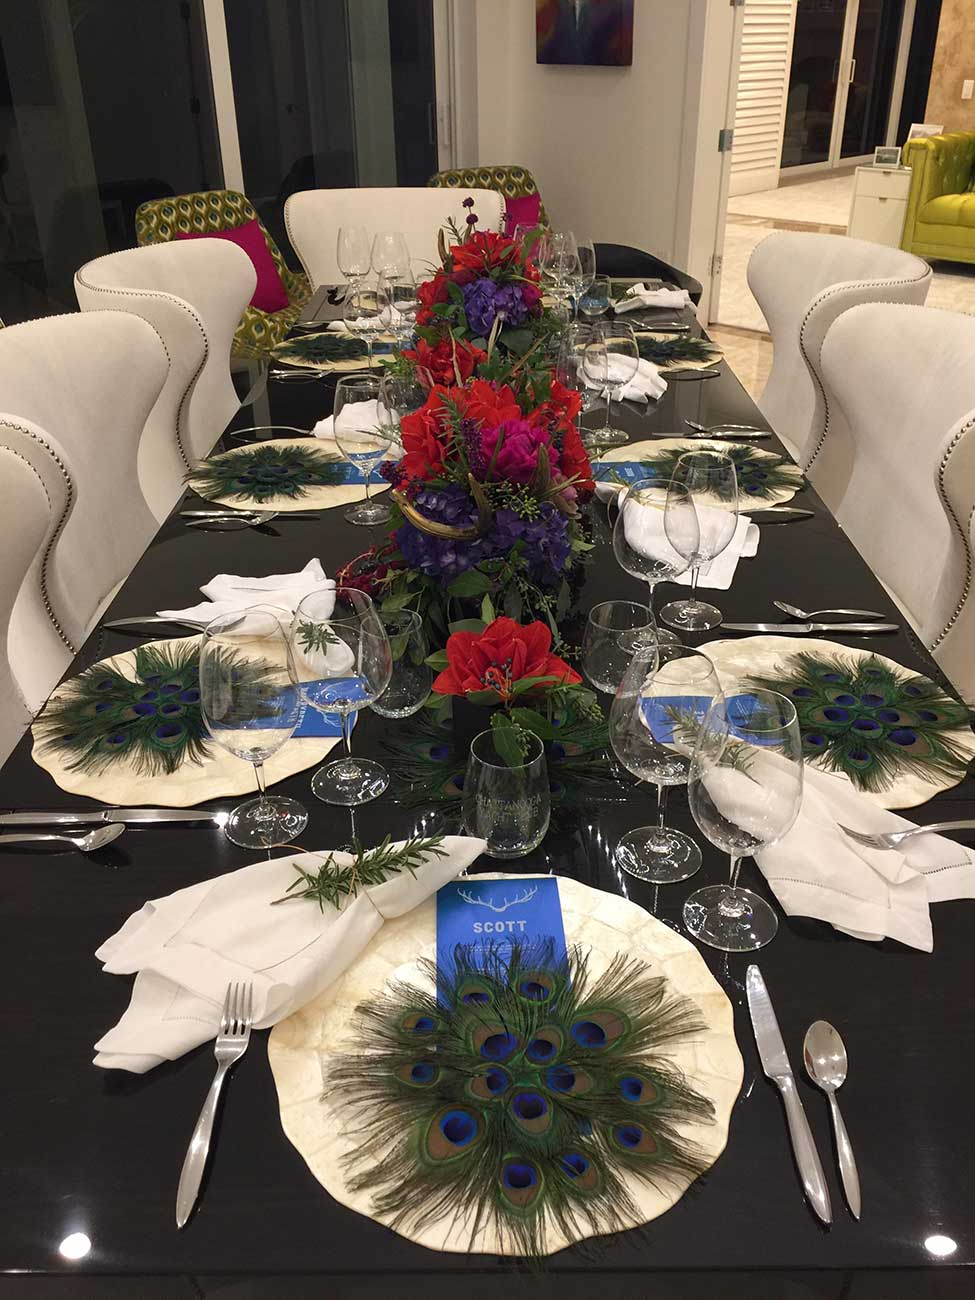 Naples Wine Festival donation dinner tabletop design with peacock feather designs including tableware and menu cards